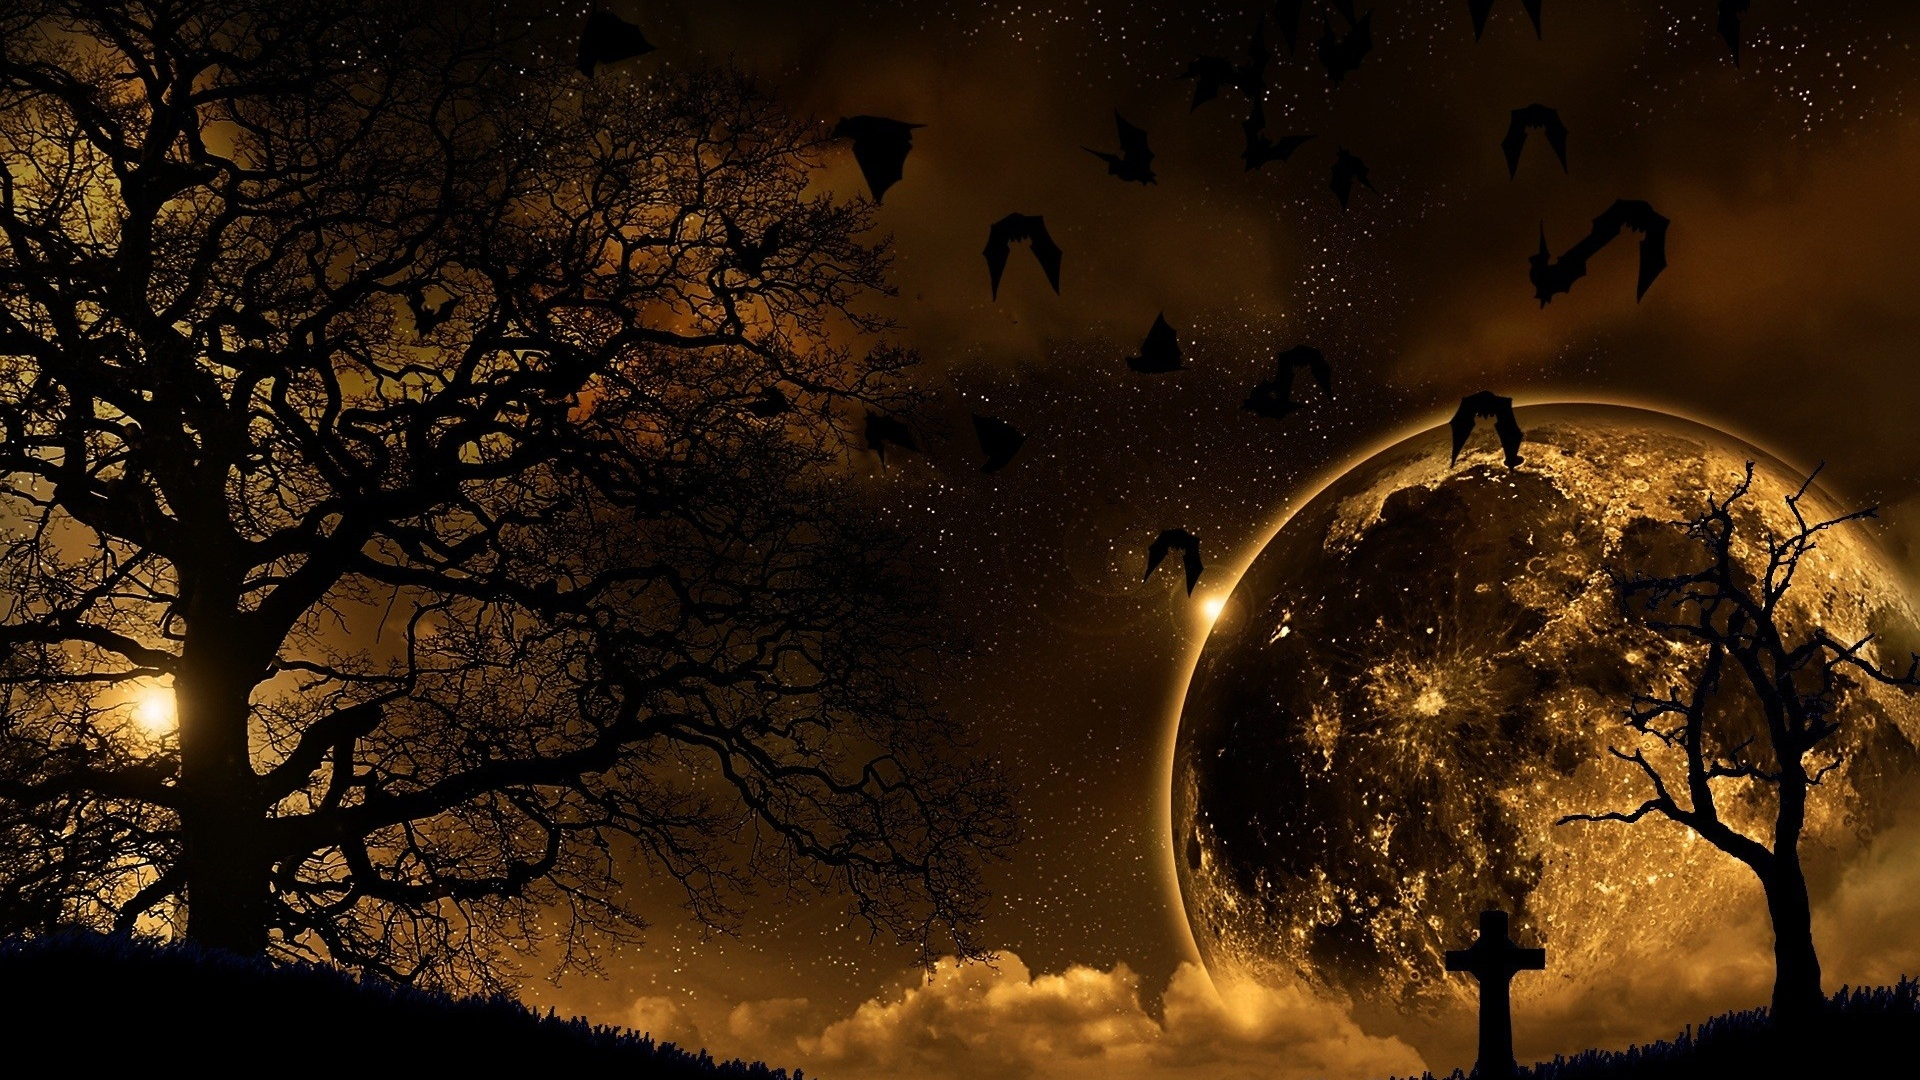 Download Wallpaper 1920x1080 Trees Nature Night Planet Birds Landscape Full HD 1080p Background